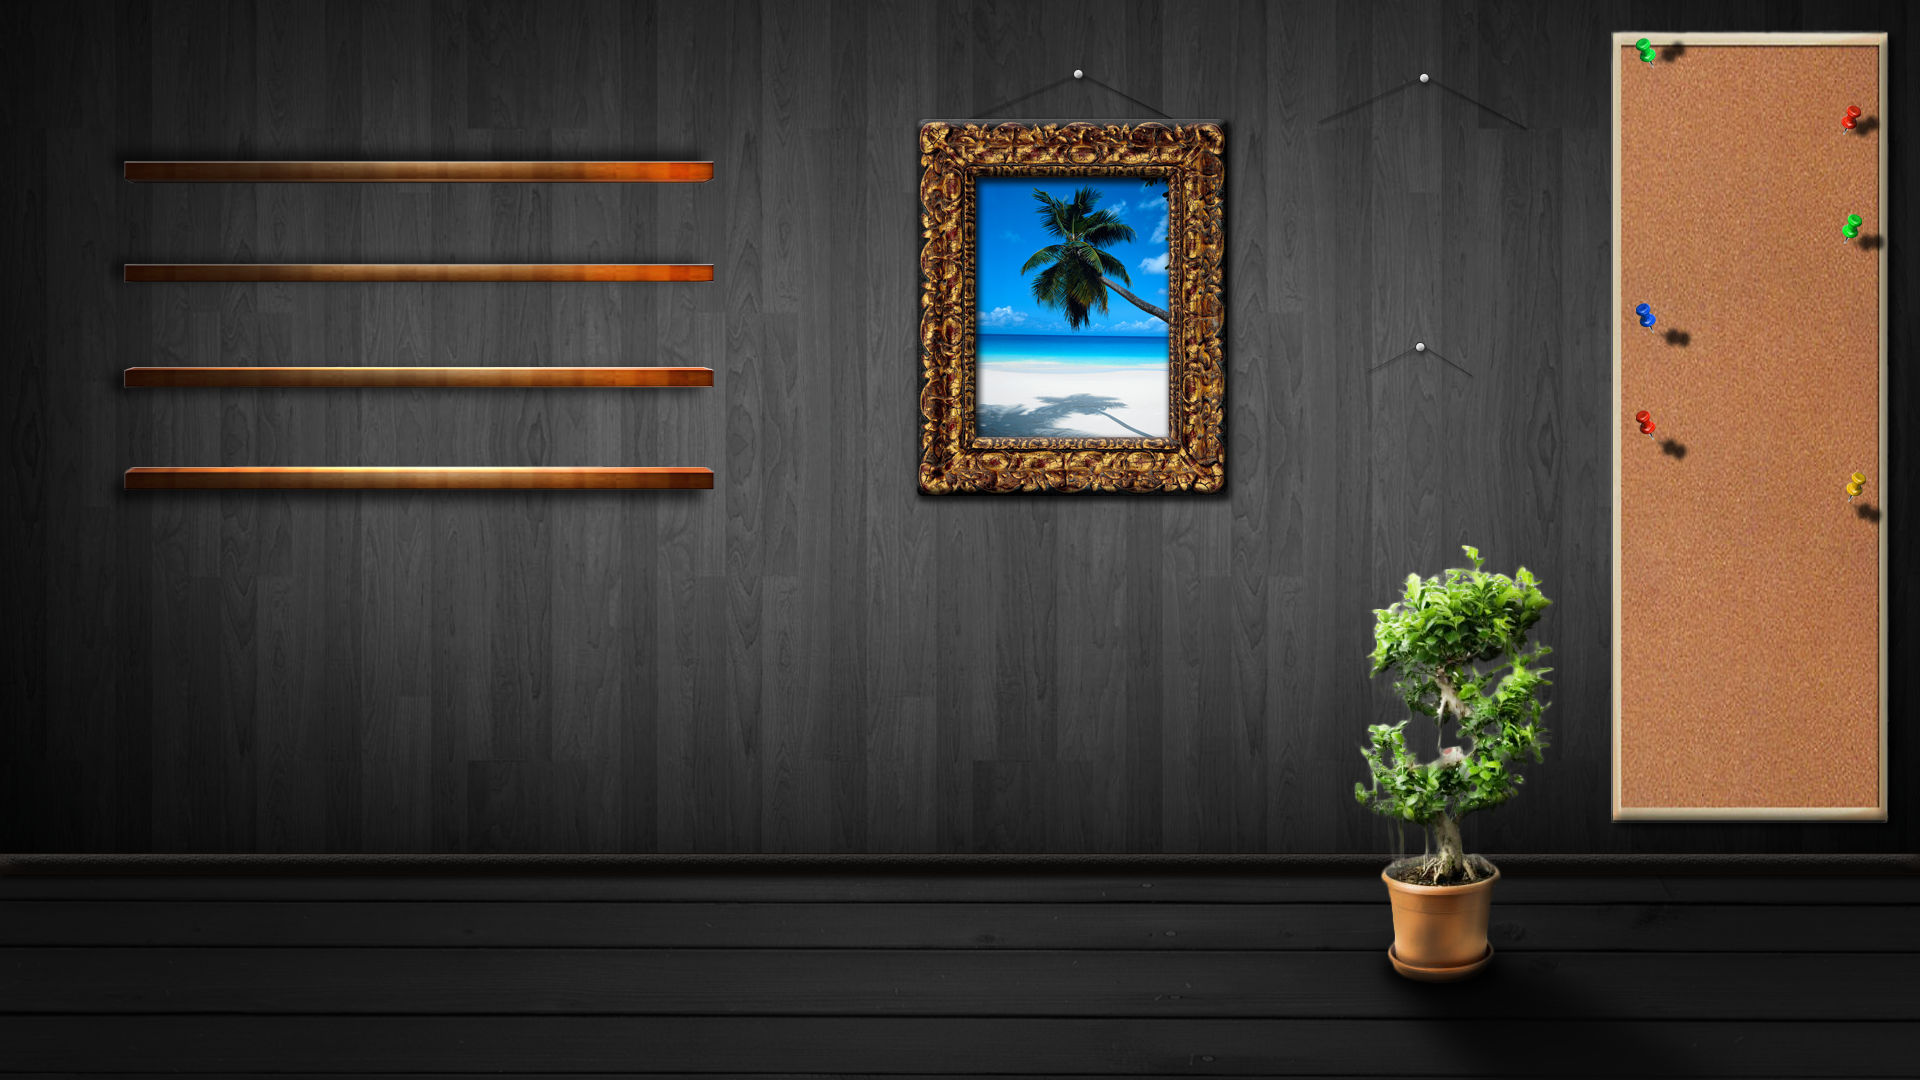 Wooden room wallpaper by chiefwrigley on deviantart for Full room wallpaper